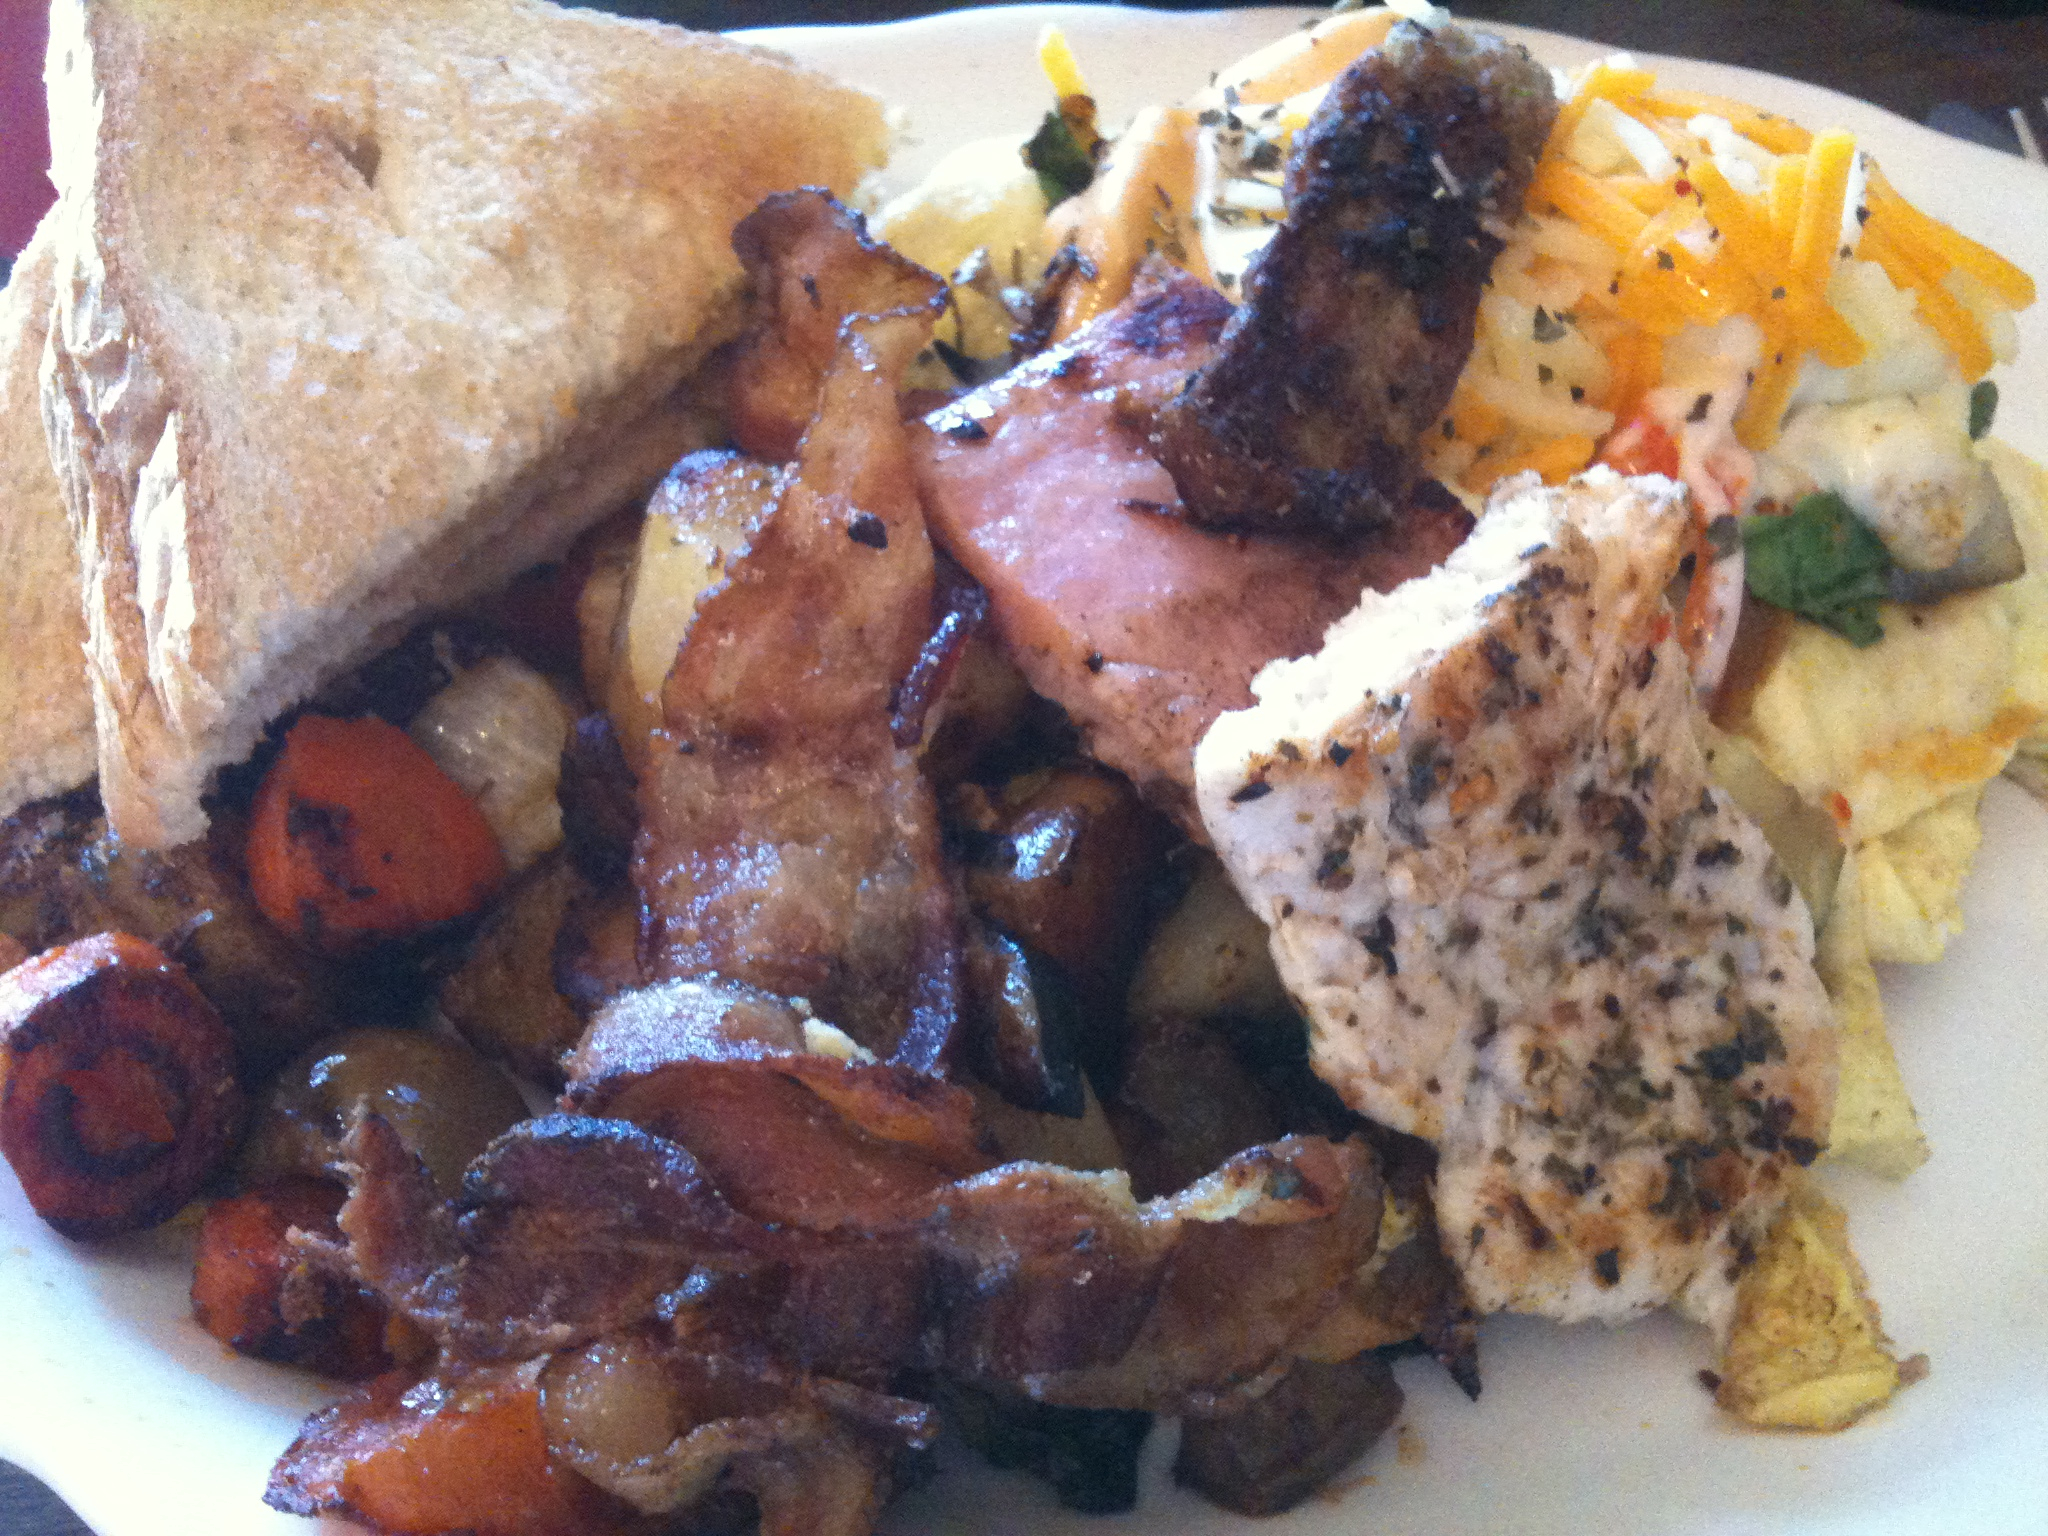 Brookline Street Lunch :: Ultimate Omelet - had it all!